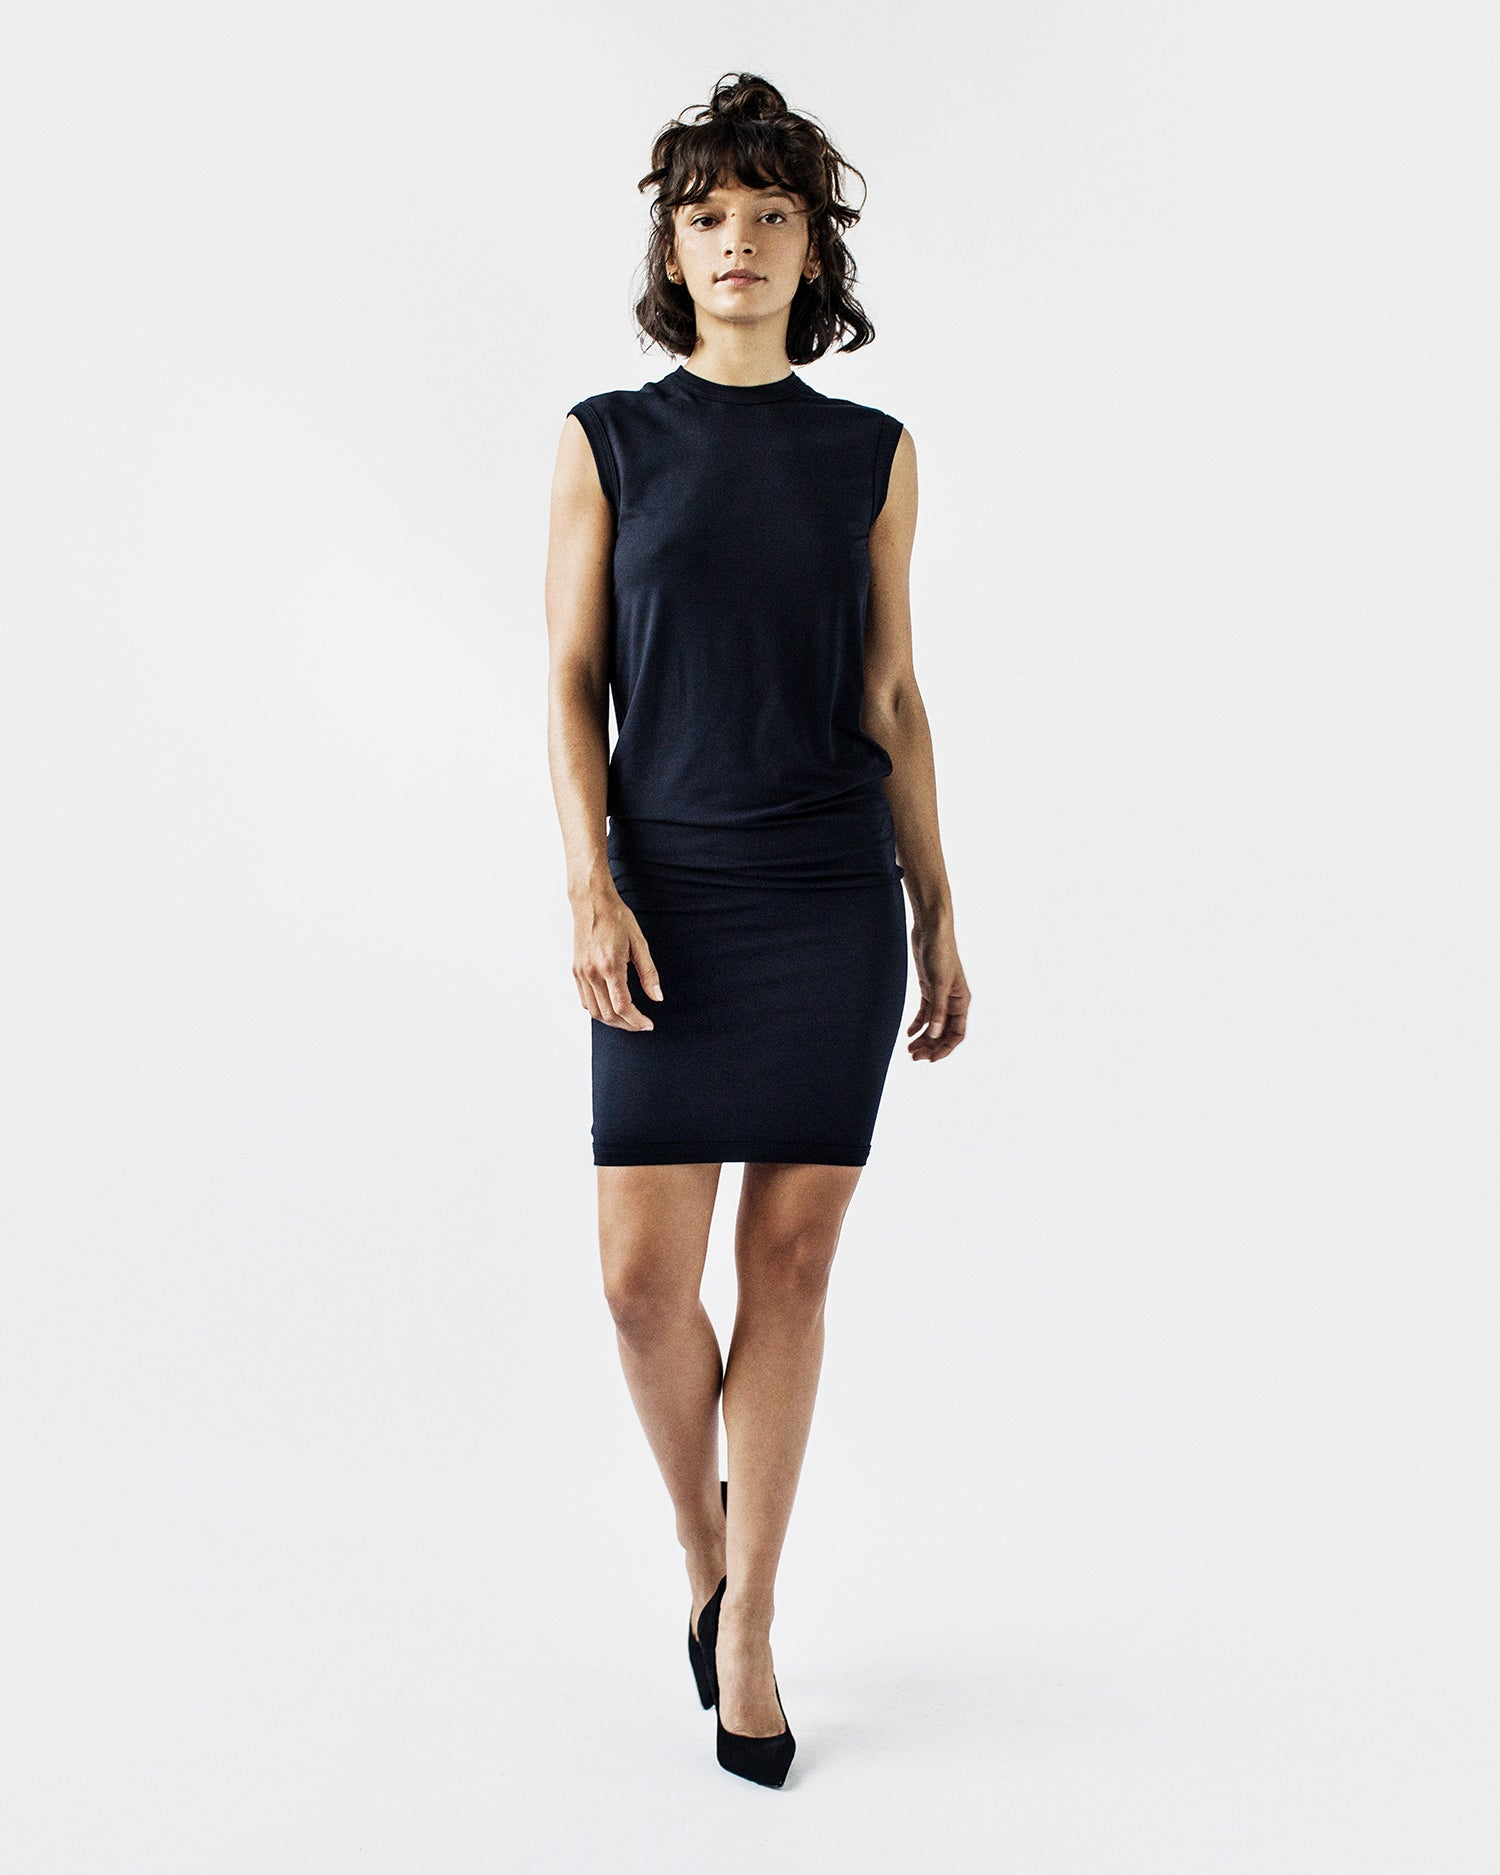 SHANNON Crew Neck Sleeveless Jersey Dress